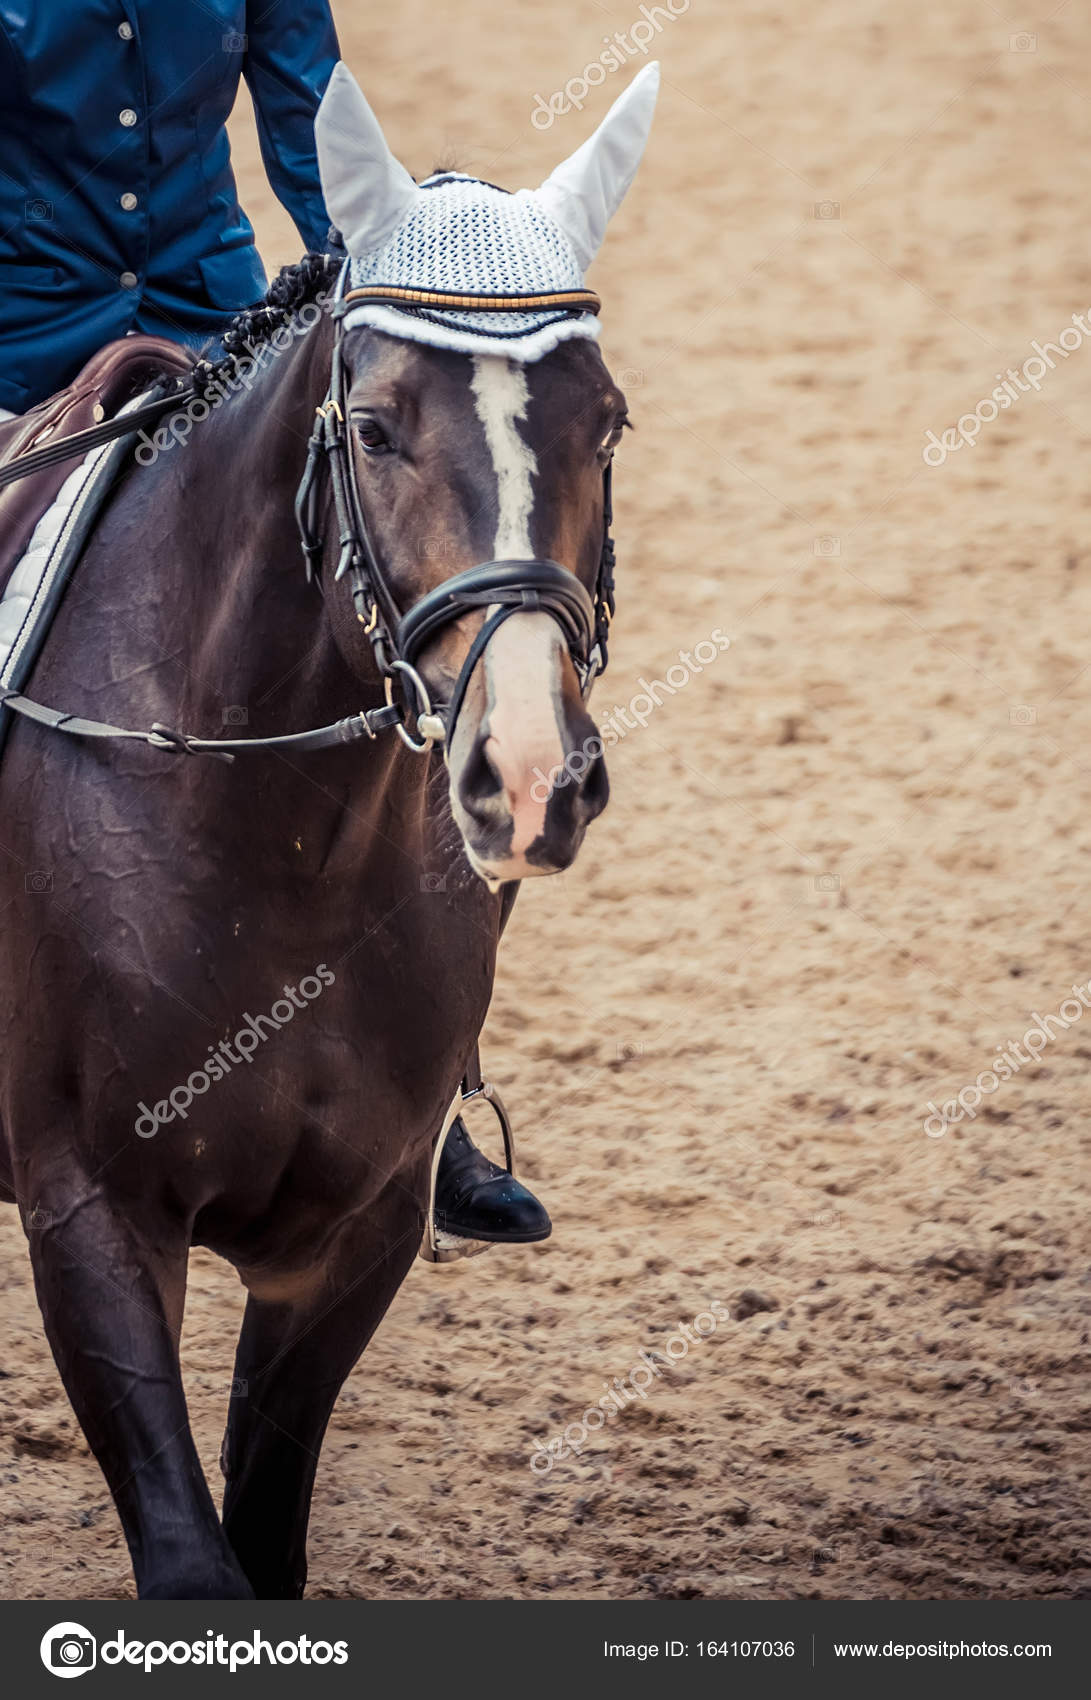 Black Horse Portrait During Dressage Competition Stock Photo C Martanovak 164107036